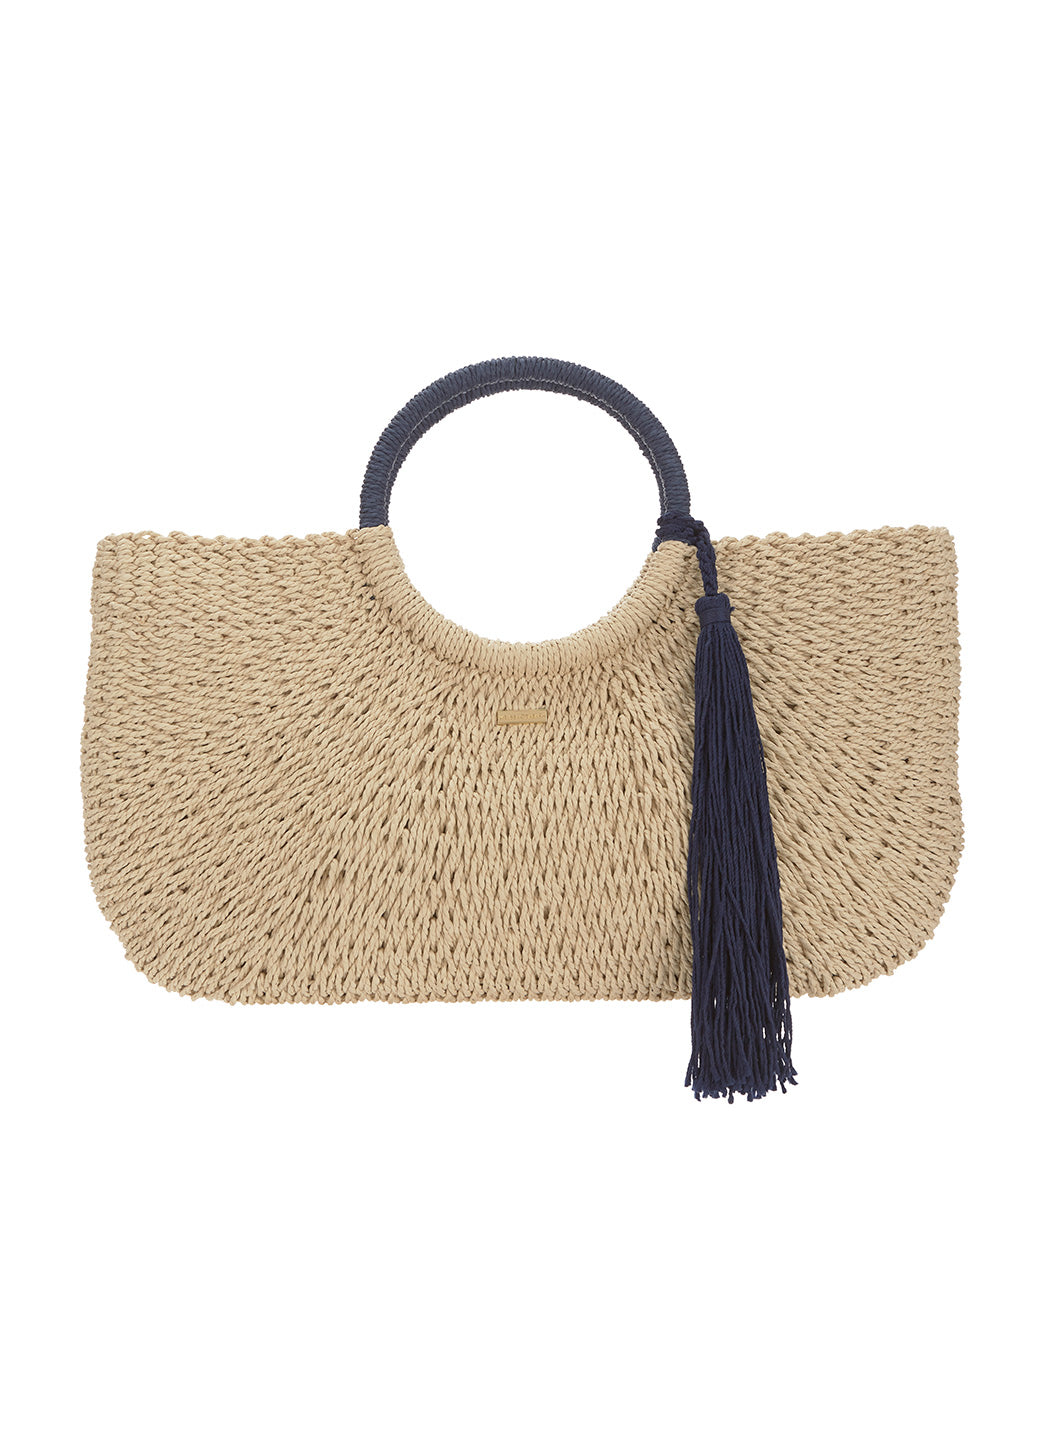 Sorrento Woven Basket Tassel Bag Natural Navy